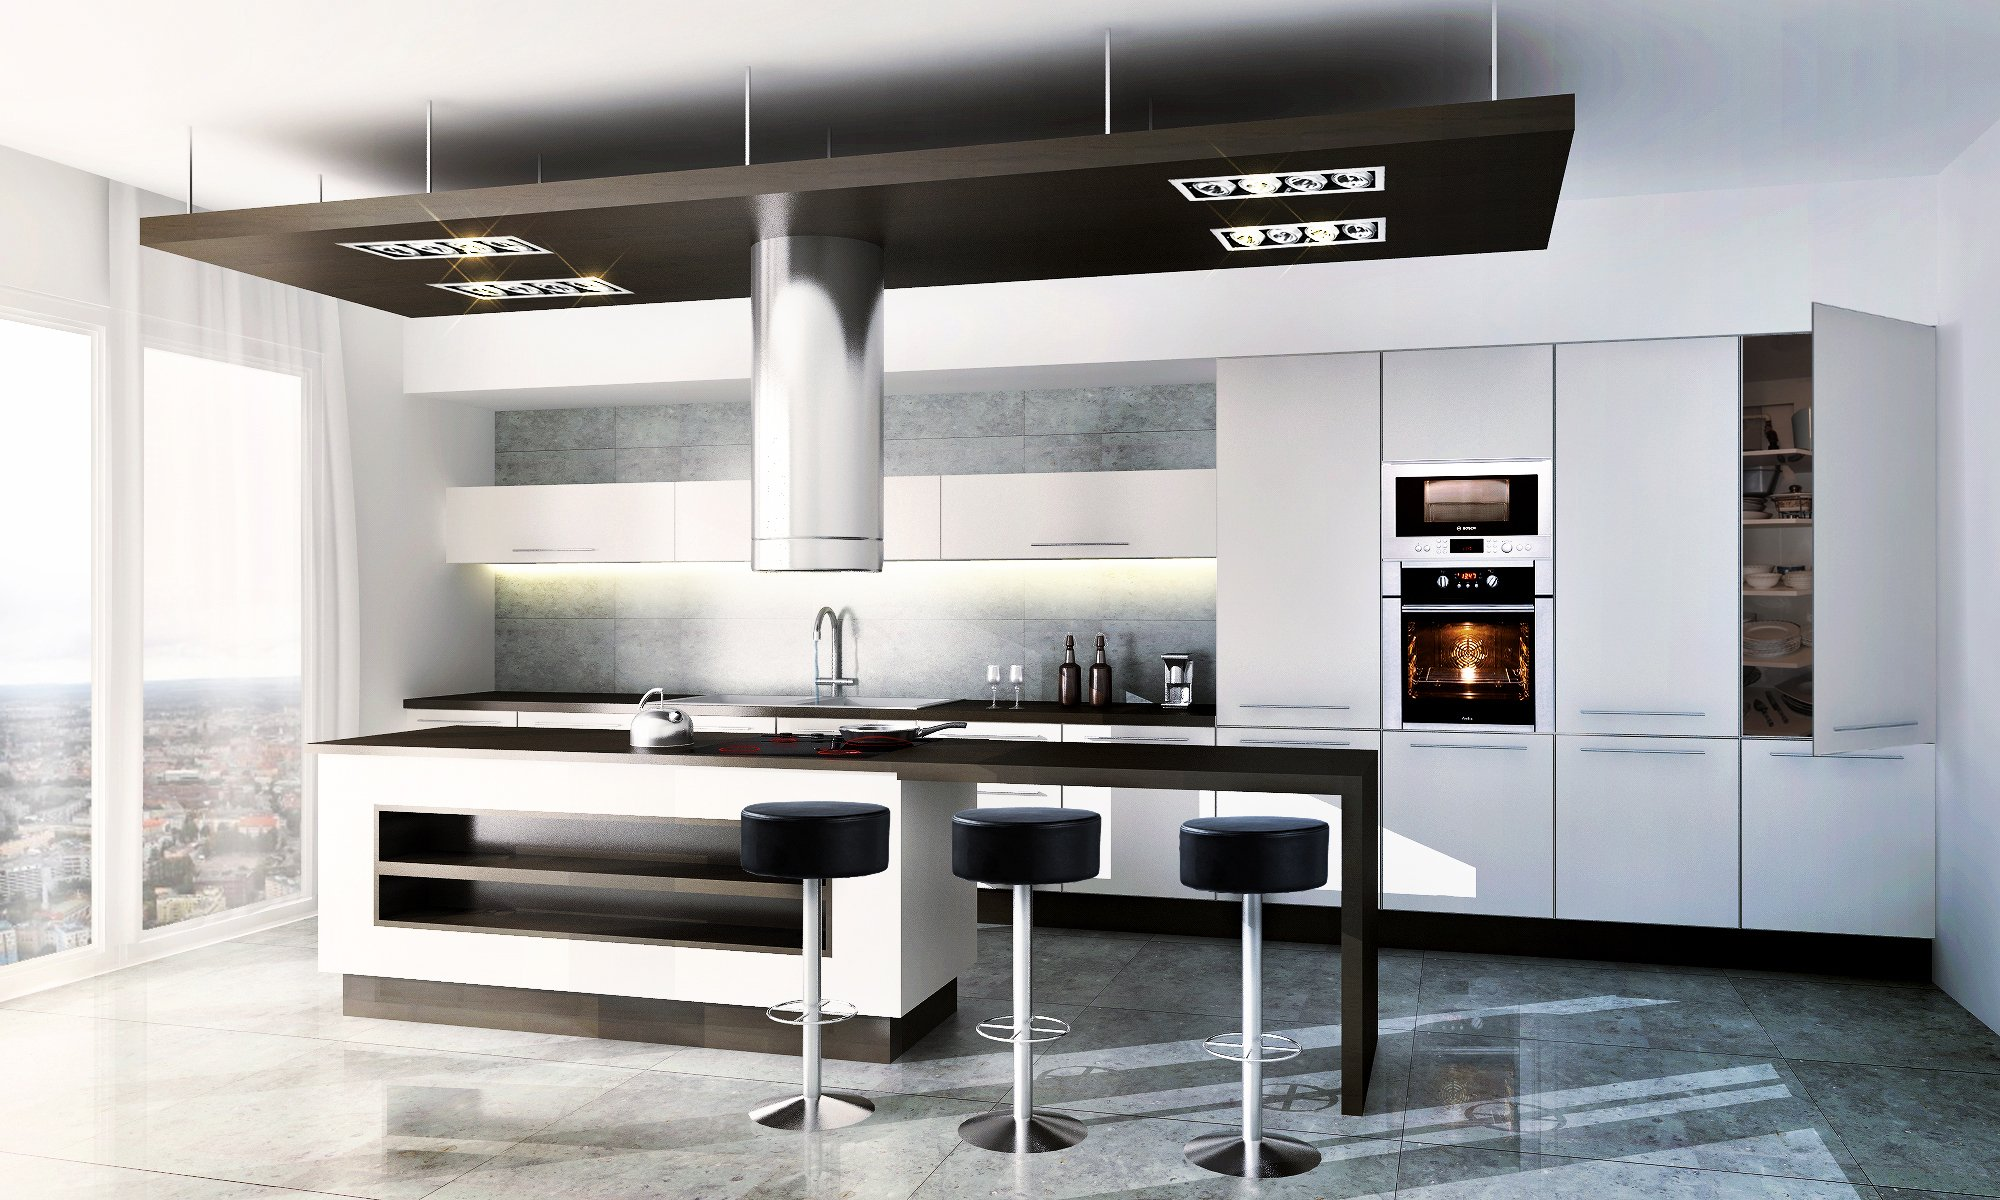 Modern Kitchen Vizblog Free 3d Models Free 3d Base